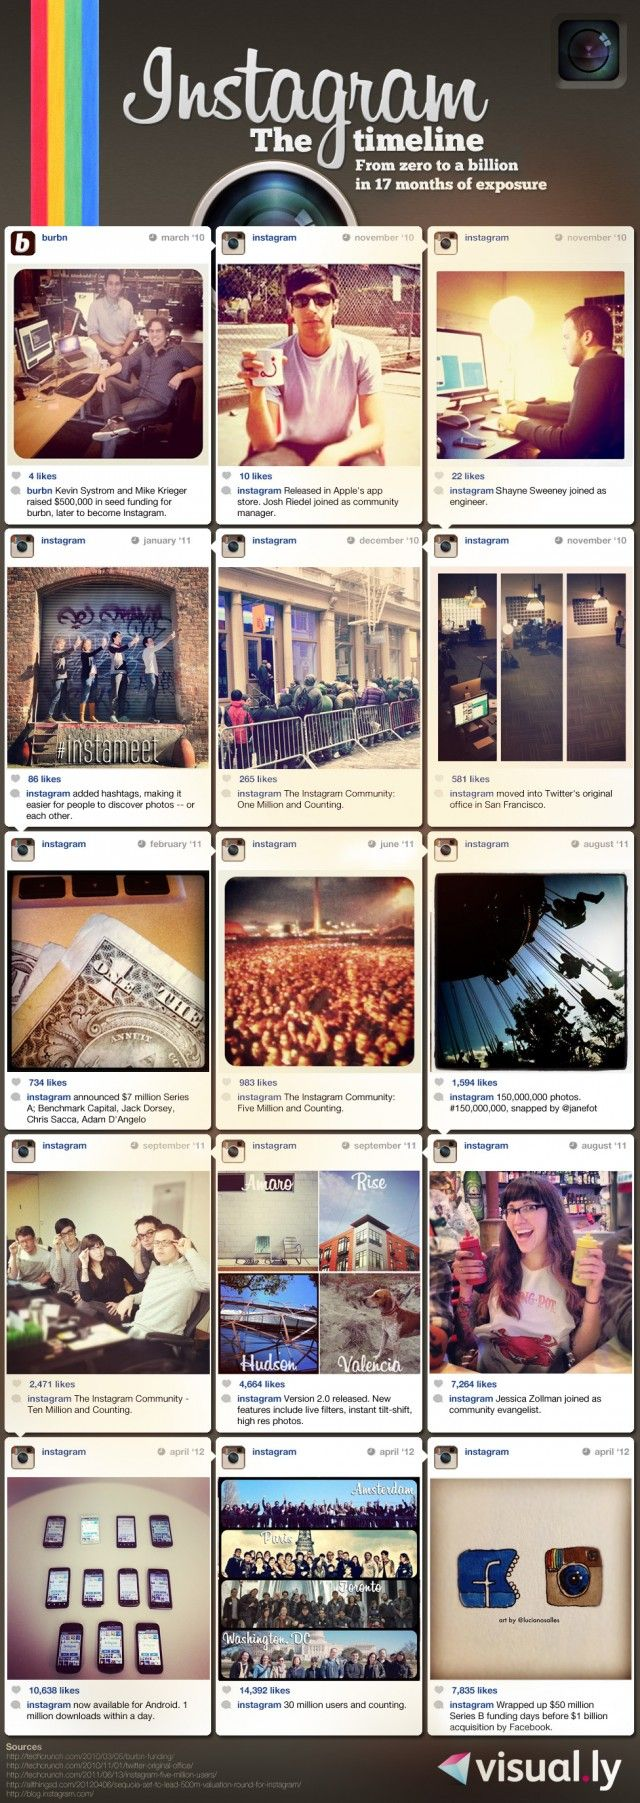 Instagram timeline: From zero to a Billion (INFOGRAPHIC)